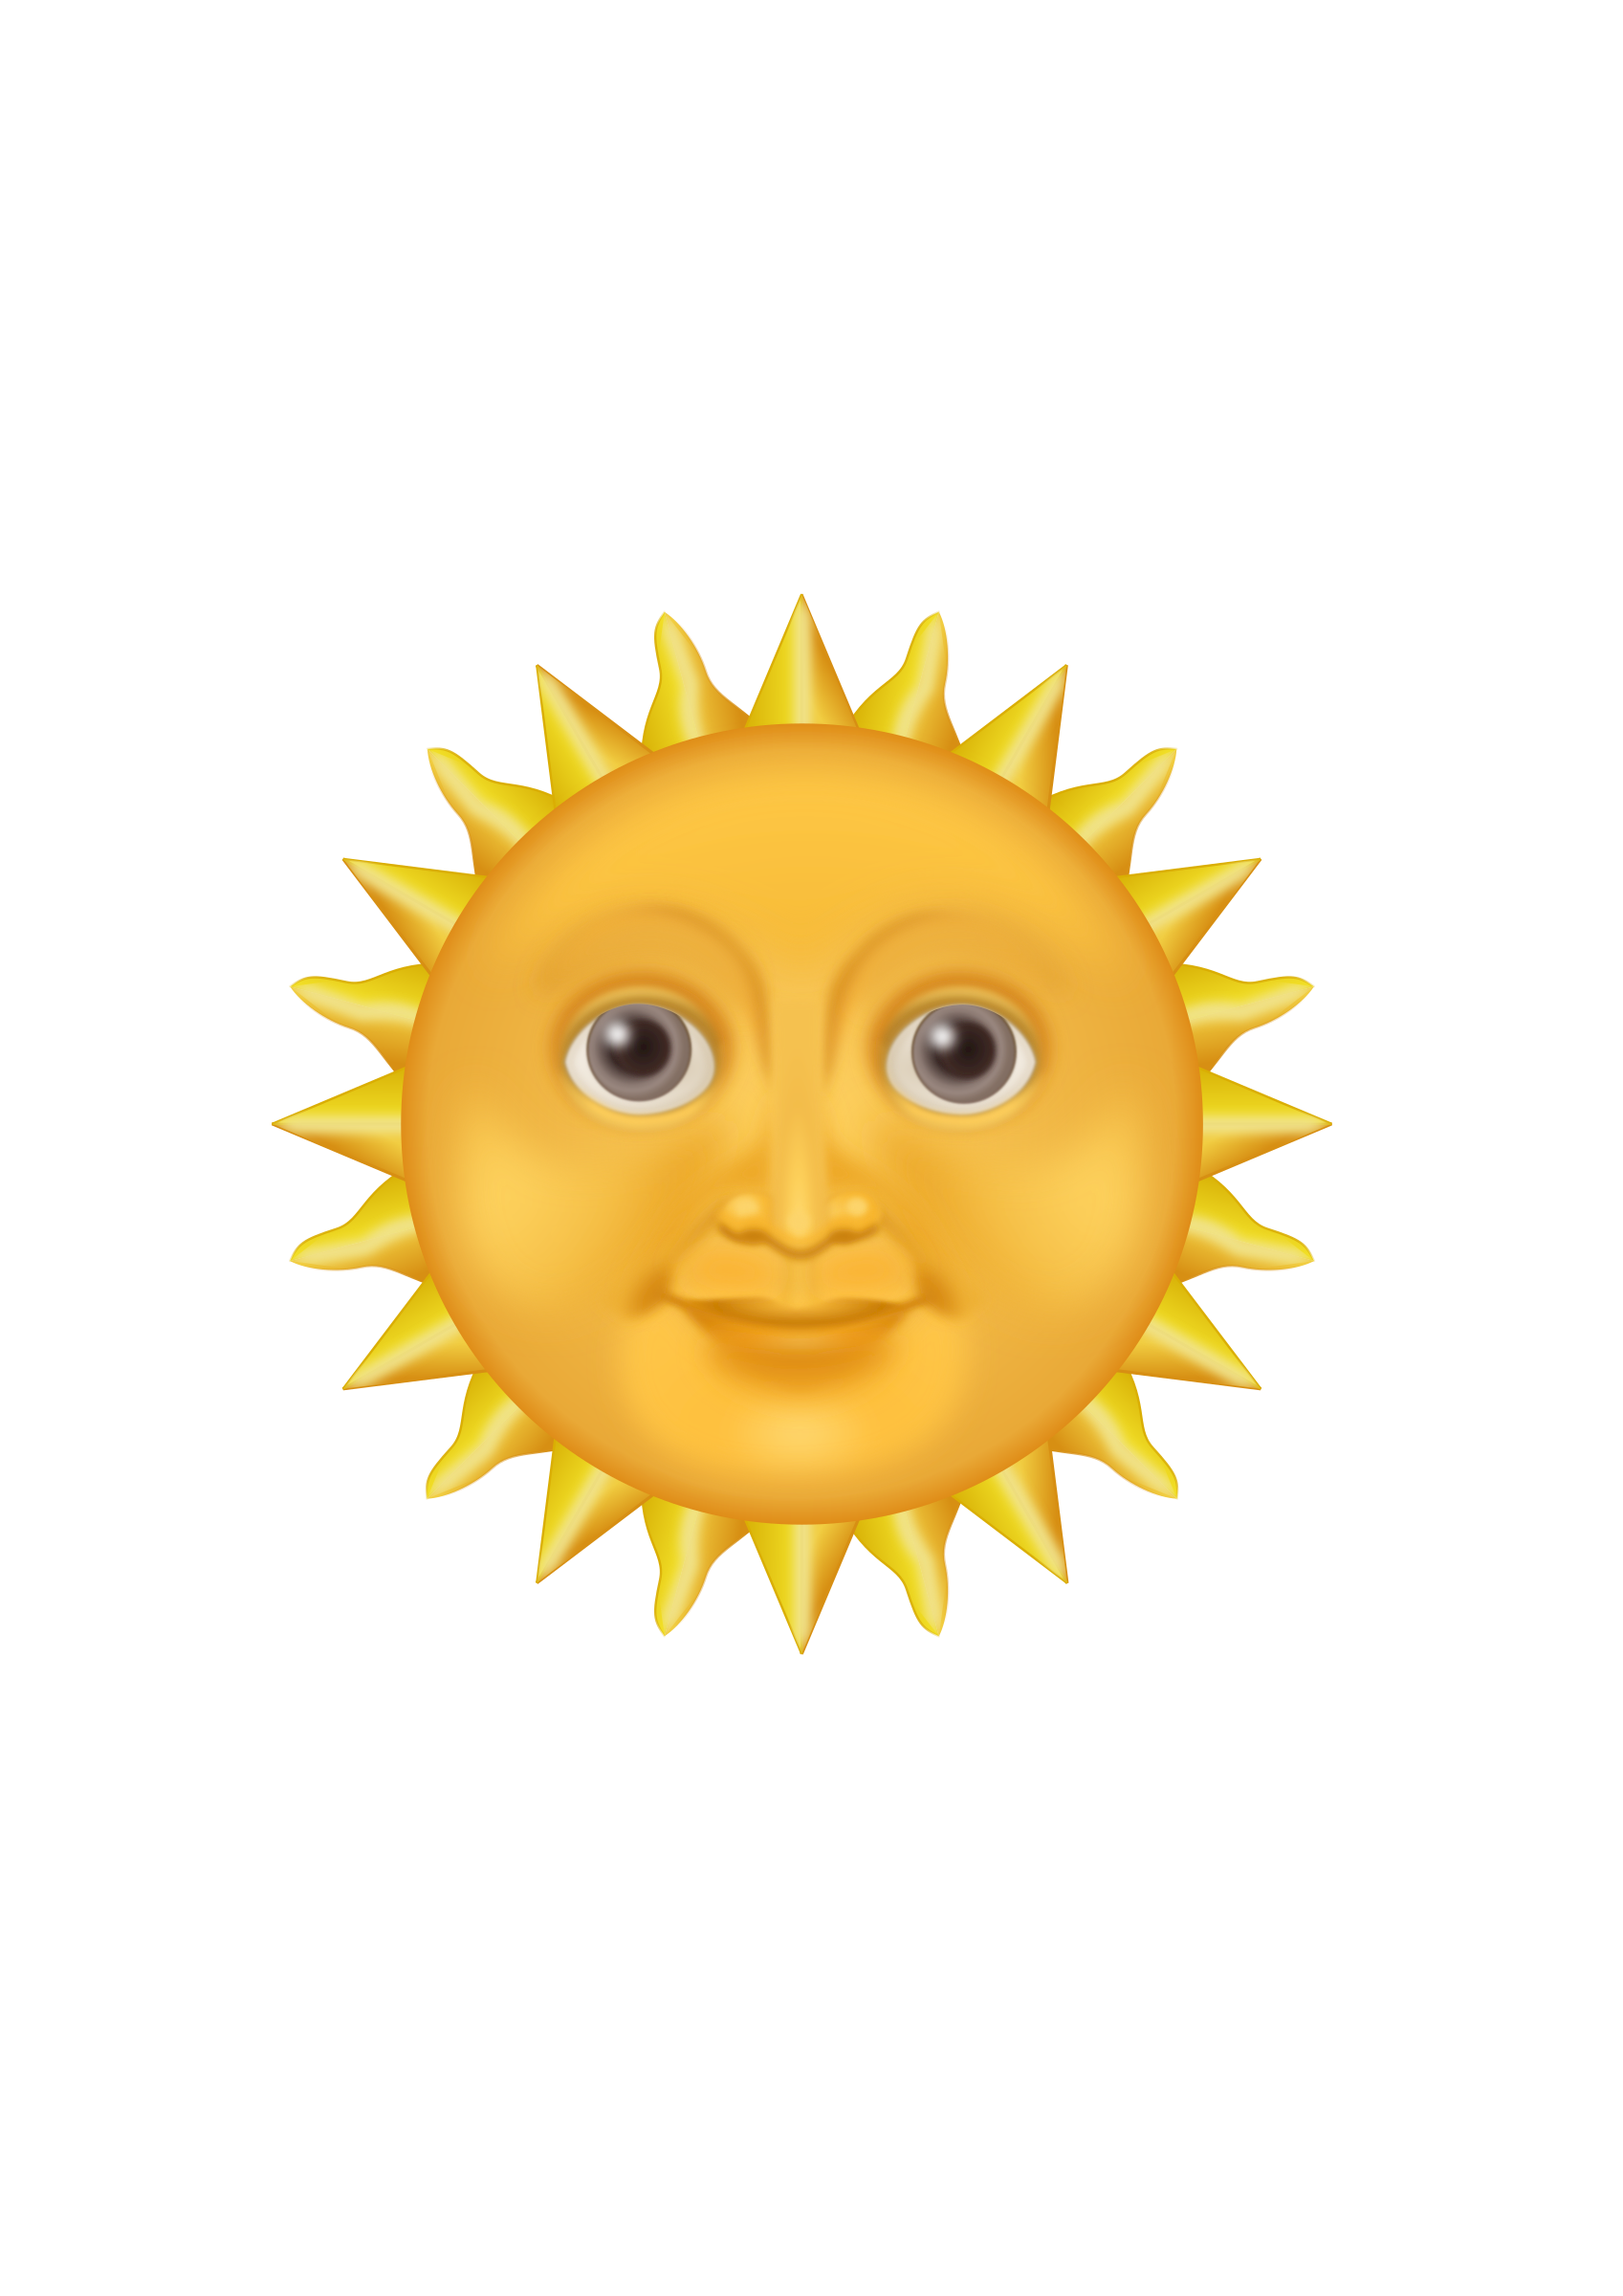 Open clipart sun vector royalty free library Clipart - Sun Emote vector royalty free library